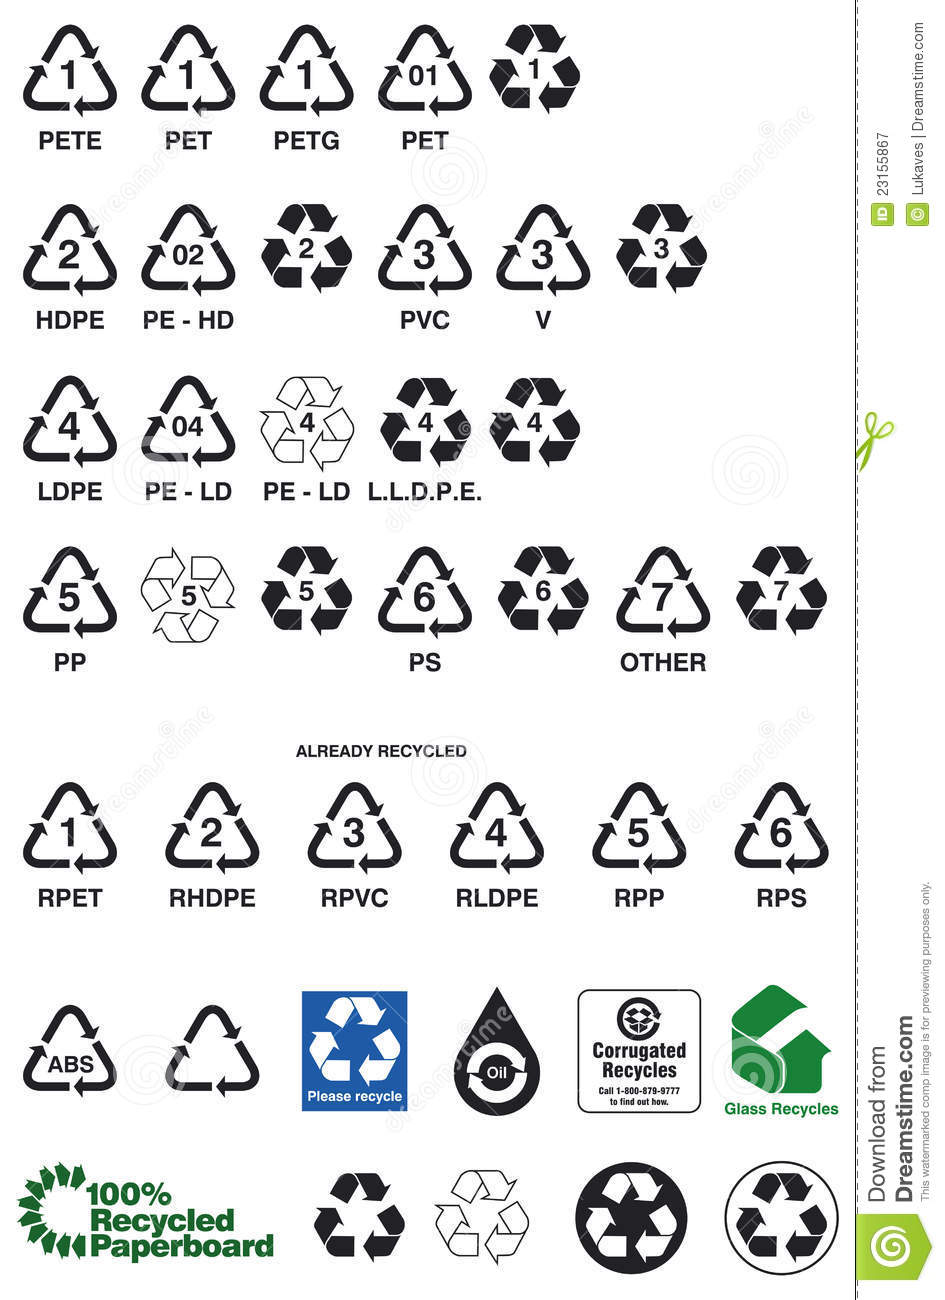 Recycling Symbols Stock Vector Illustration Of Ldpe 23155867